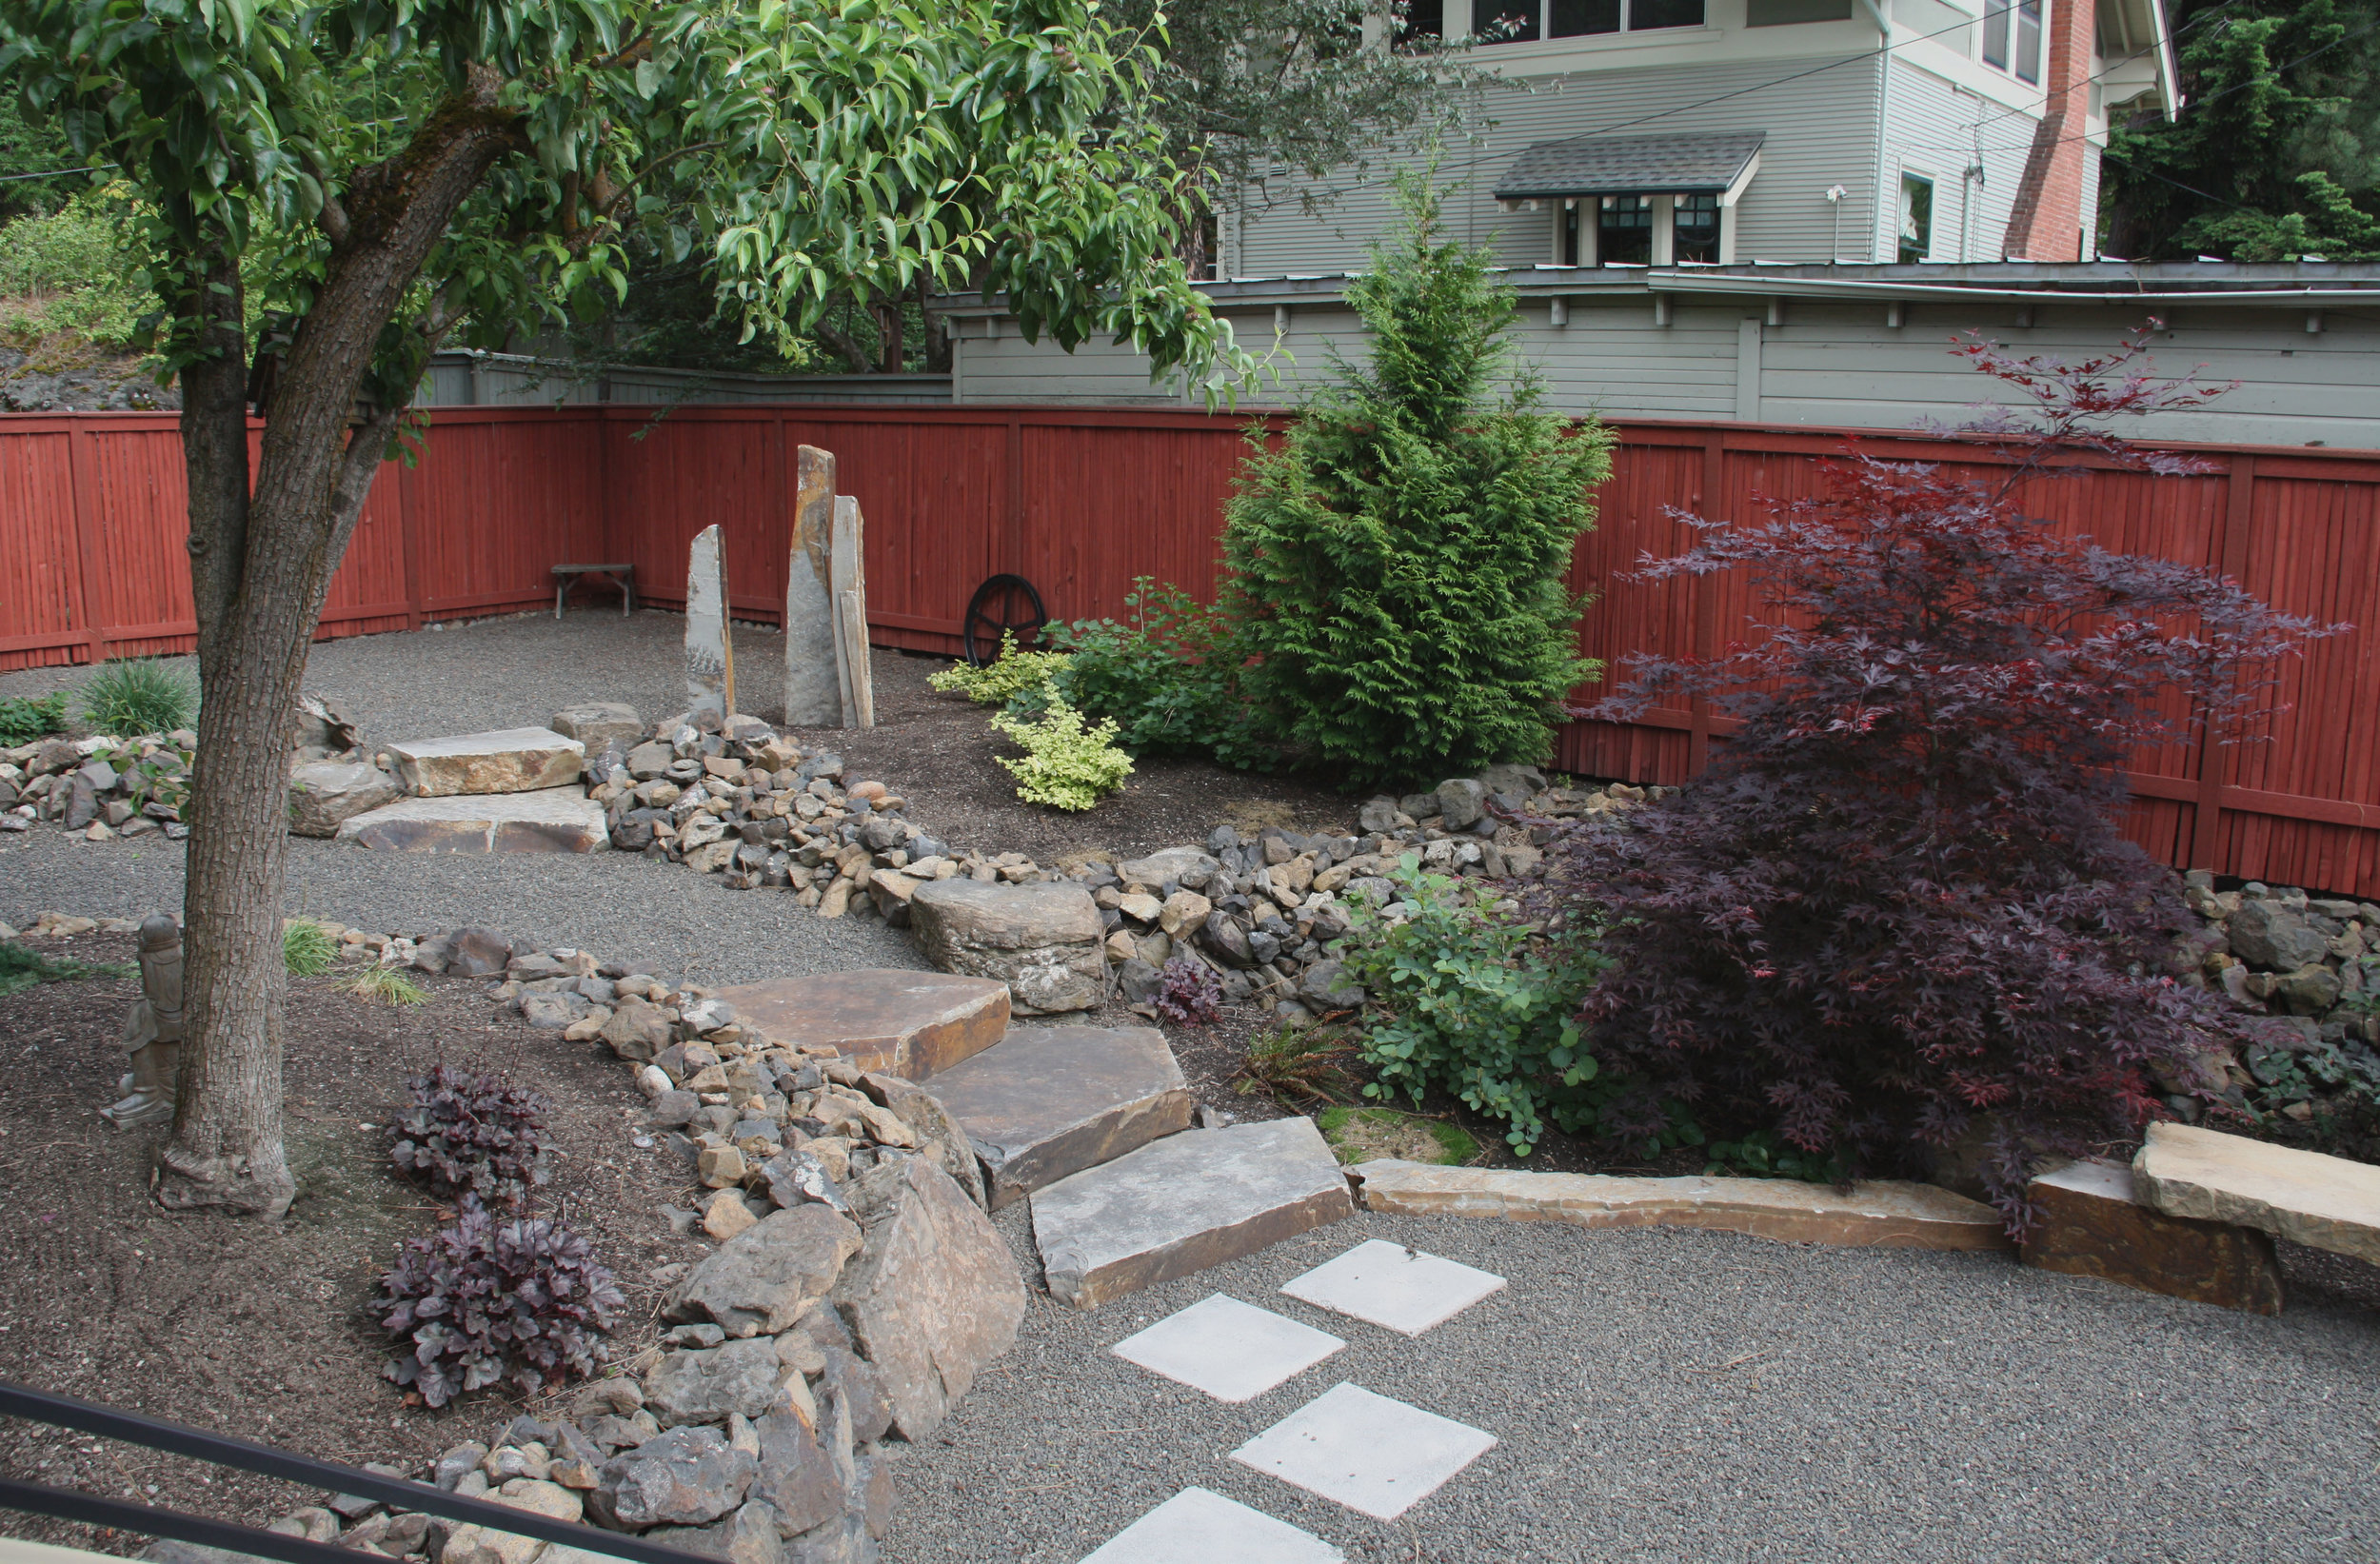 gravel path with stone steps